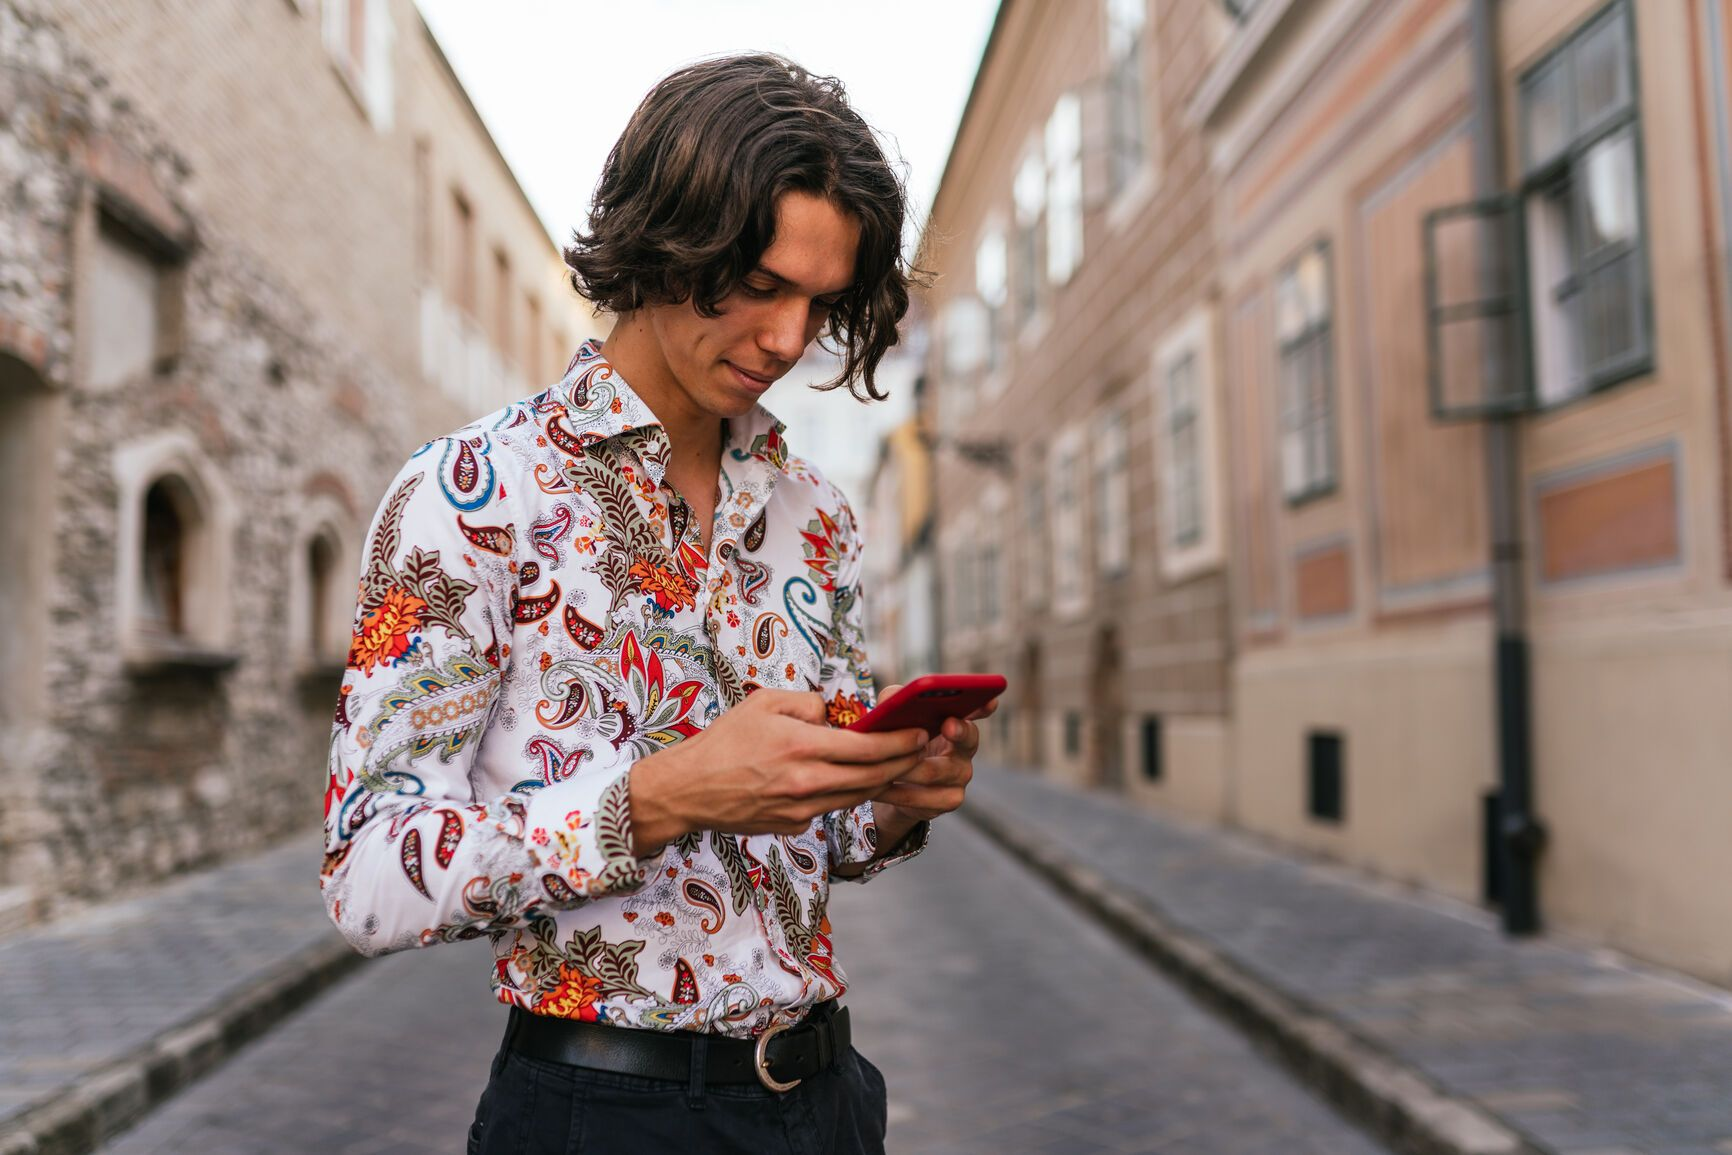 A young man with a curtain haircut looking at his phone.